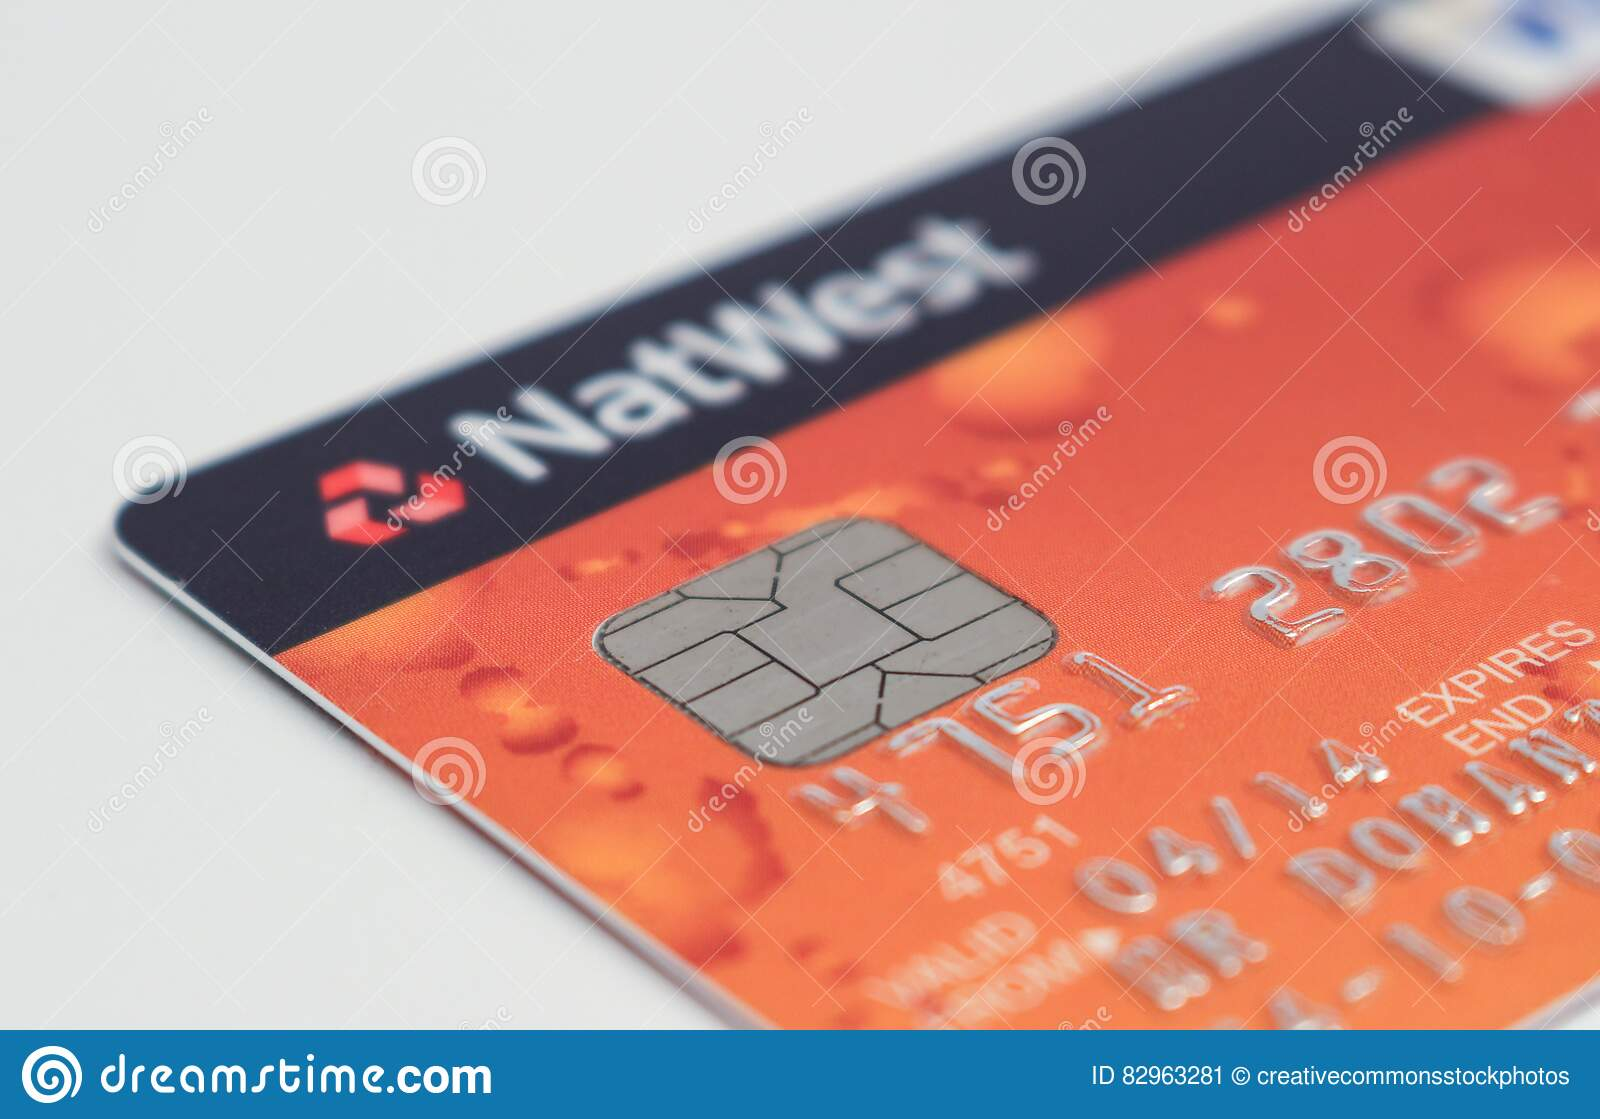 Natwest Credit Card Picture Image 82963281